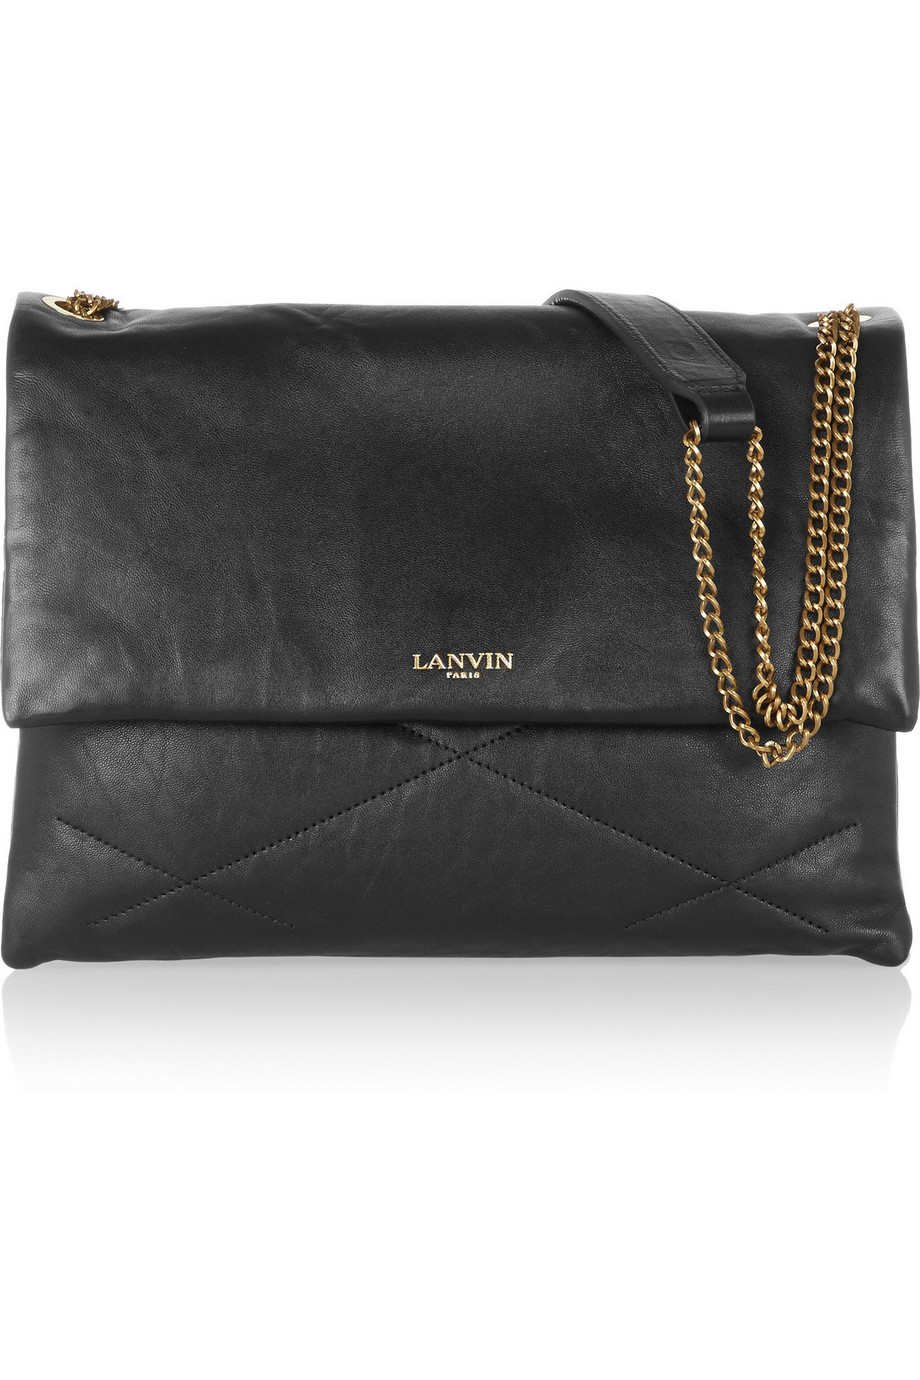 Lanvin Happy Shoulder Bag - Handbags - LAN26566 | The RealReal